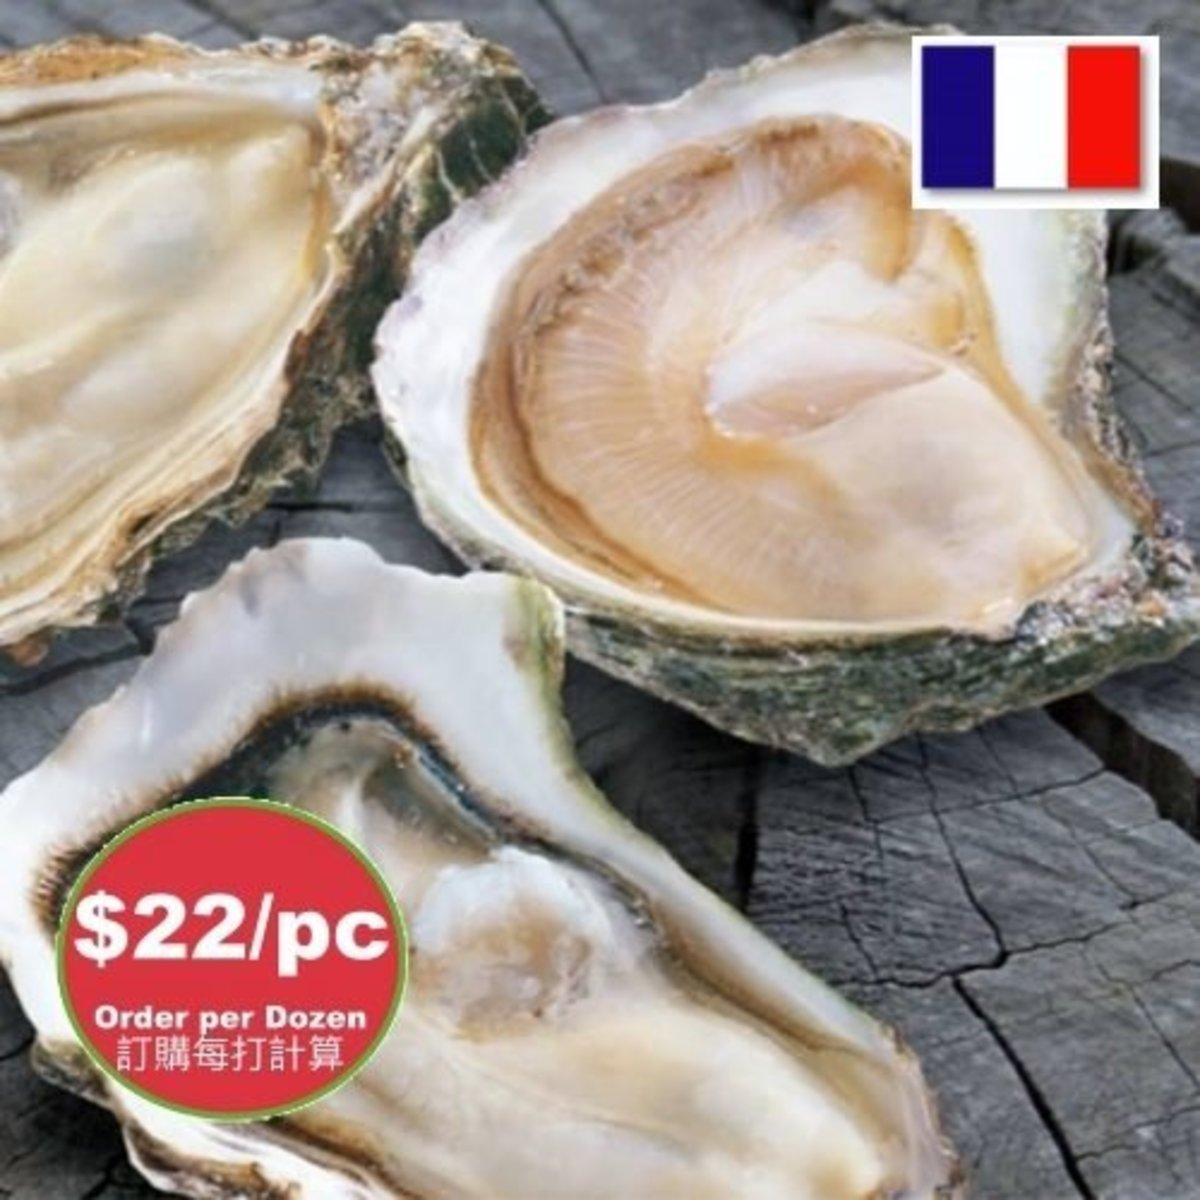 #2 French Special Cadoret Live Oyster, 90-110g/pc. Price is for 12 pcs.